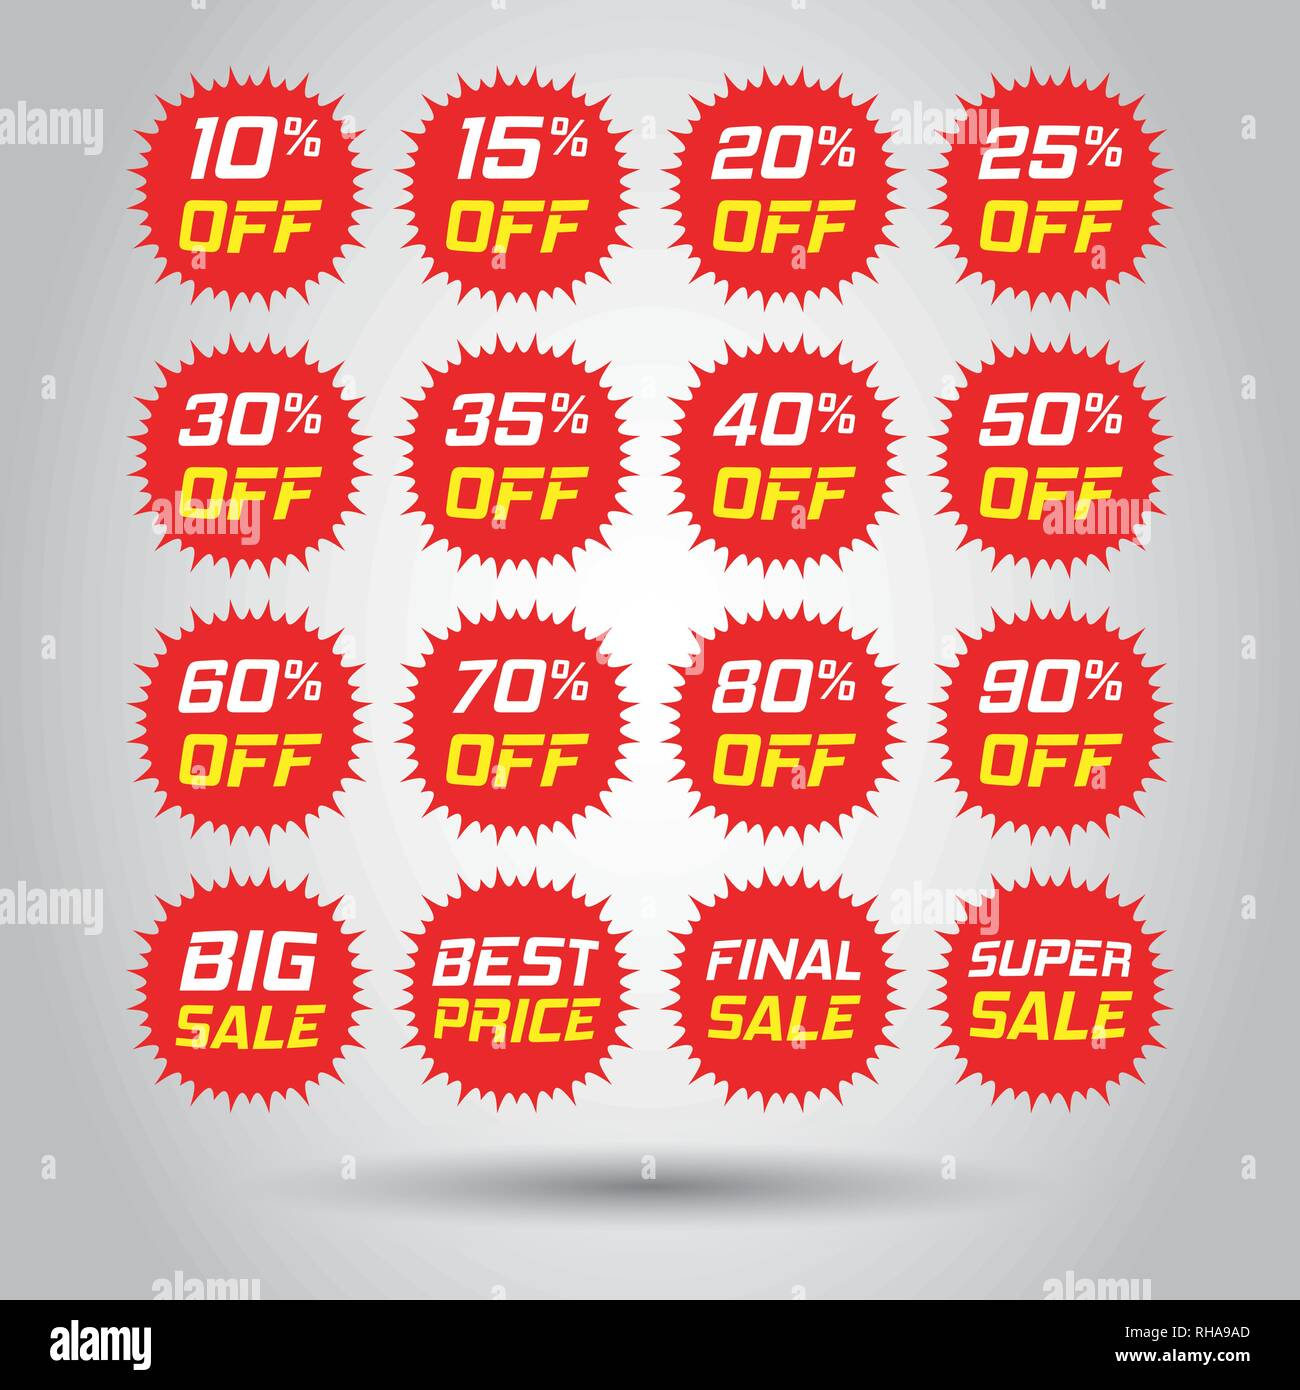 Discount stickers vector icon set in flat style. Sale tag sign illustration on white background. Promotion 10, 15, 20, 25, 30, 35, 40, 50, 60, 70, 80, - Stock Vector